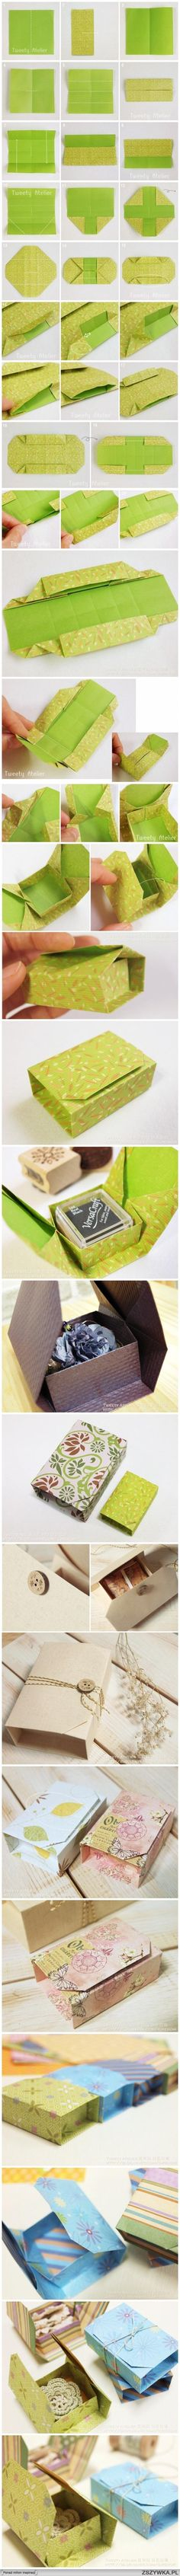 http://img.zszywka.pl/0/0160/w_8857/DIY-Zrob-to-sam/oorigamigift-box.jpg very cute!